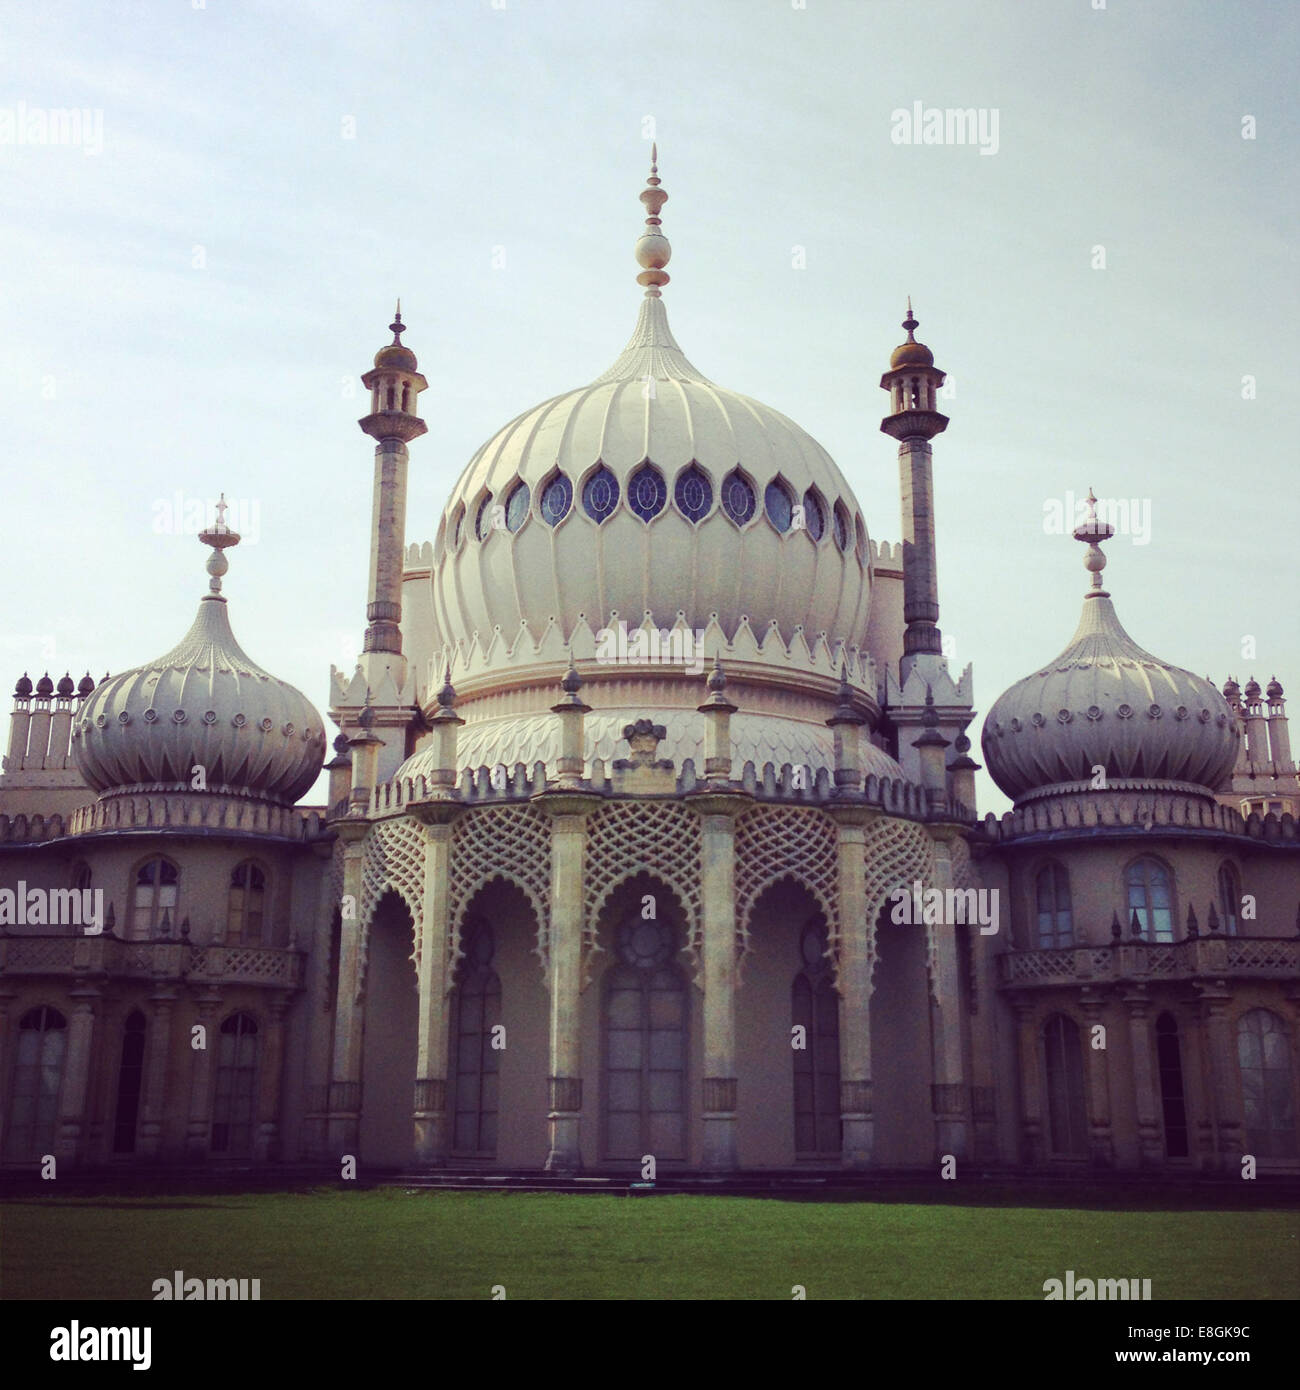 UK, England, Brighton, Al-Medinah Mosque - Stock Image